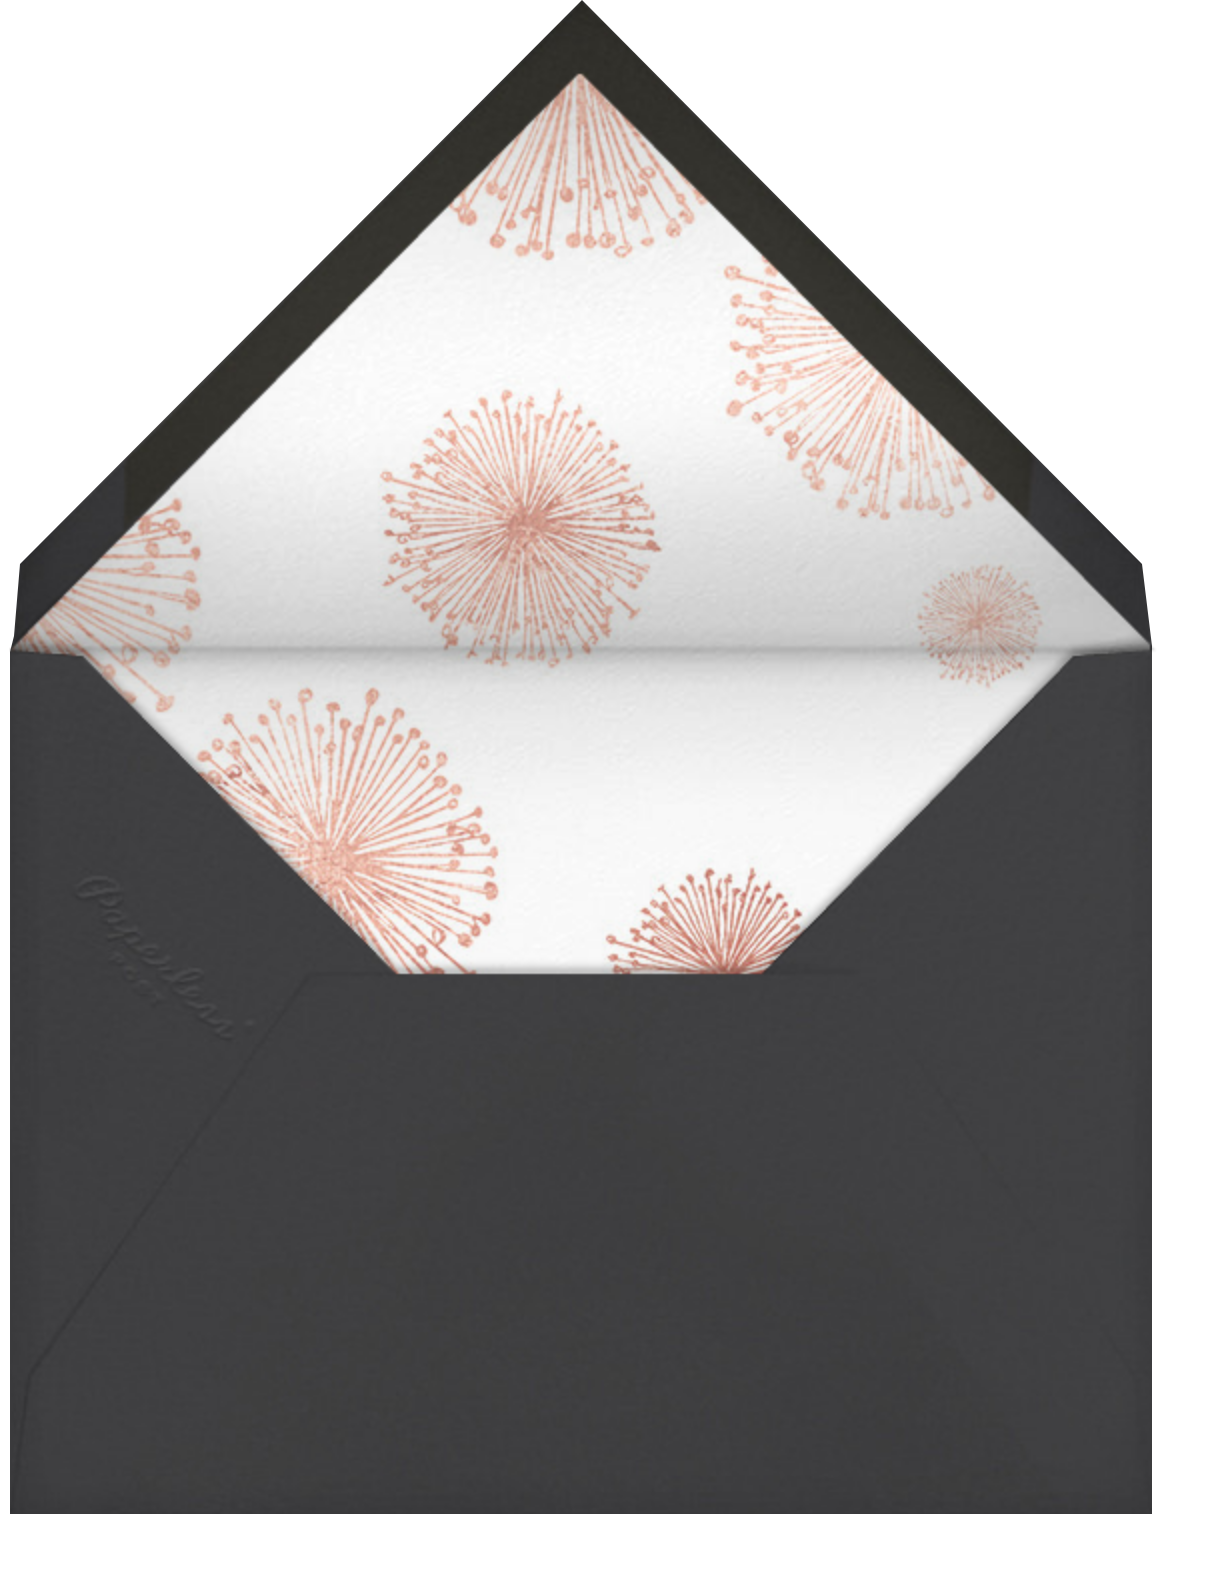 Dandelion (Save the Date) - White/Rose Gold - Paperless Post - Save the date - envelope back